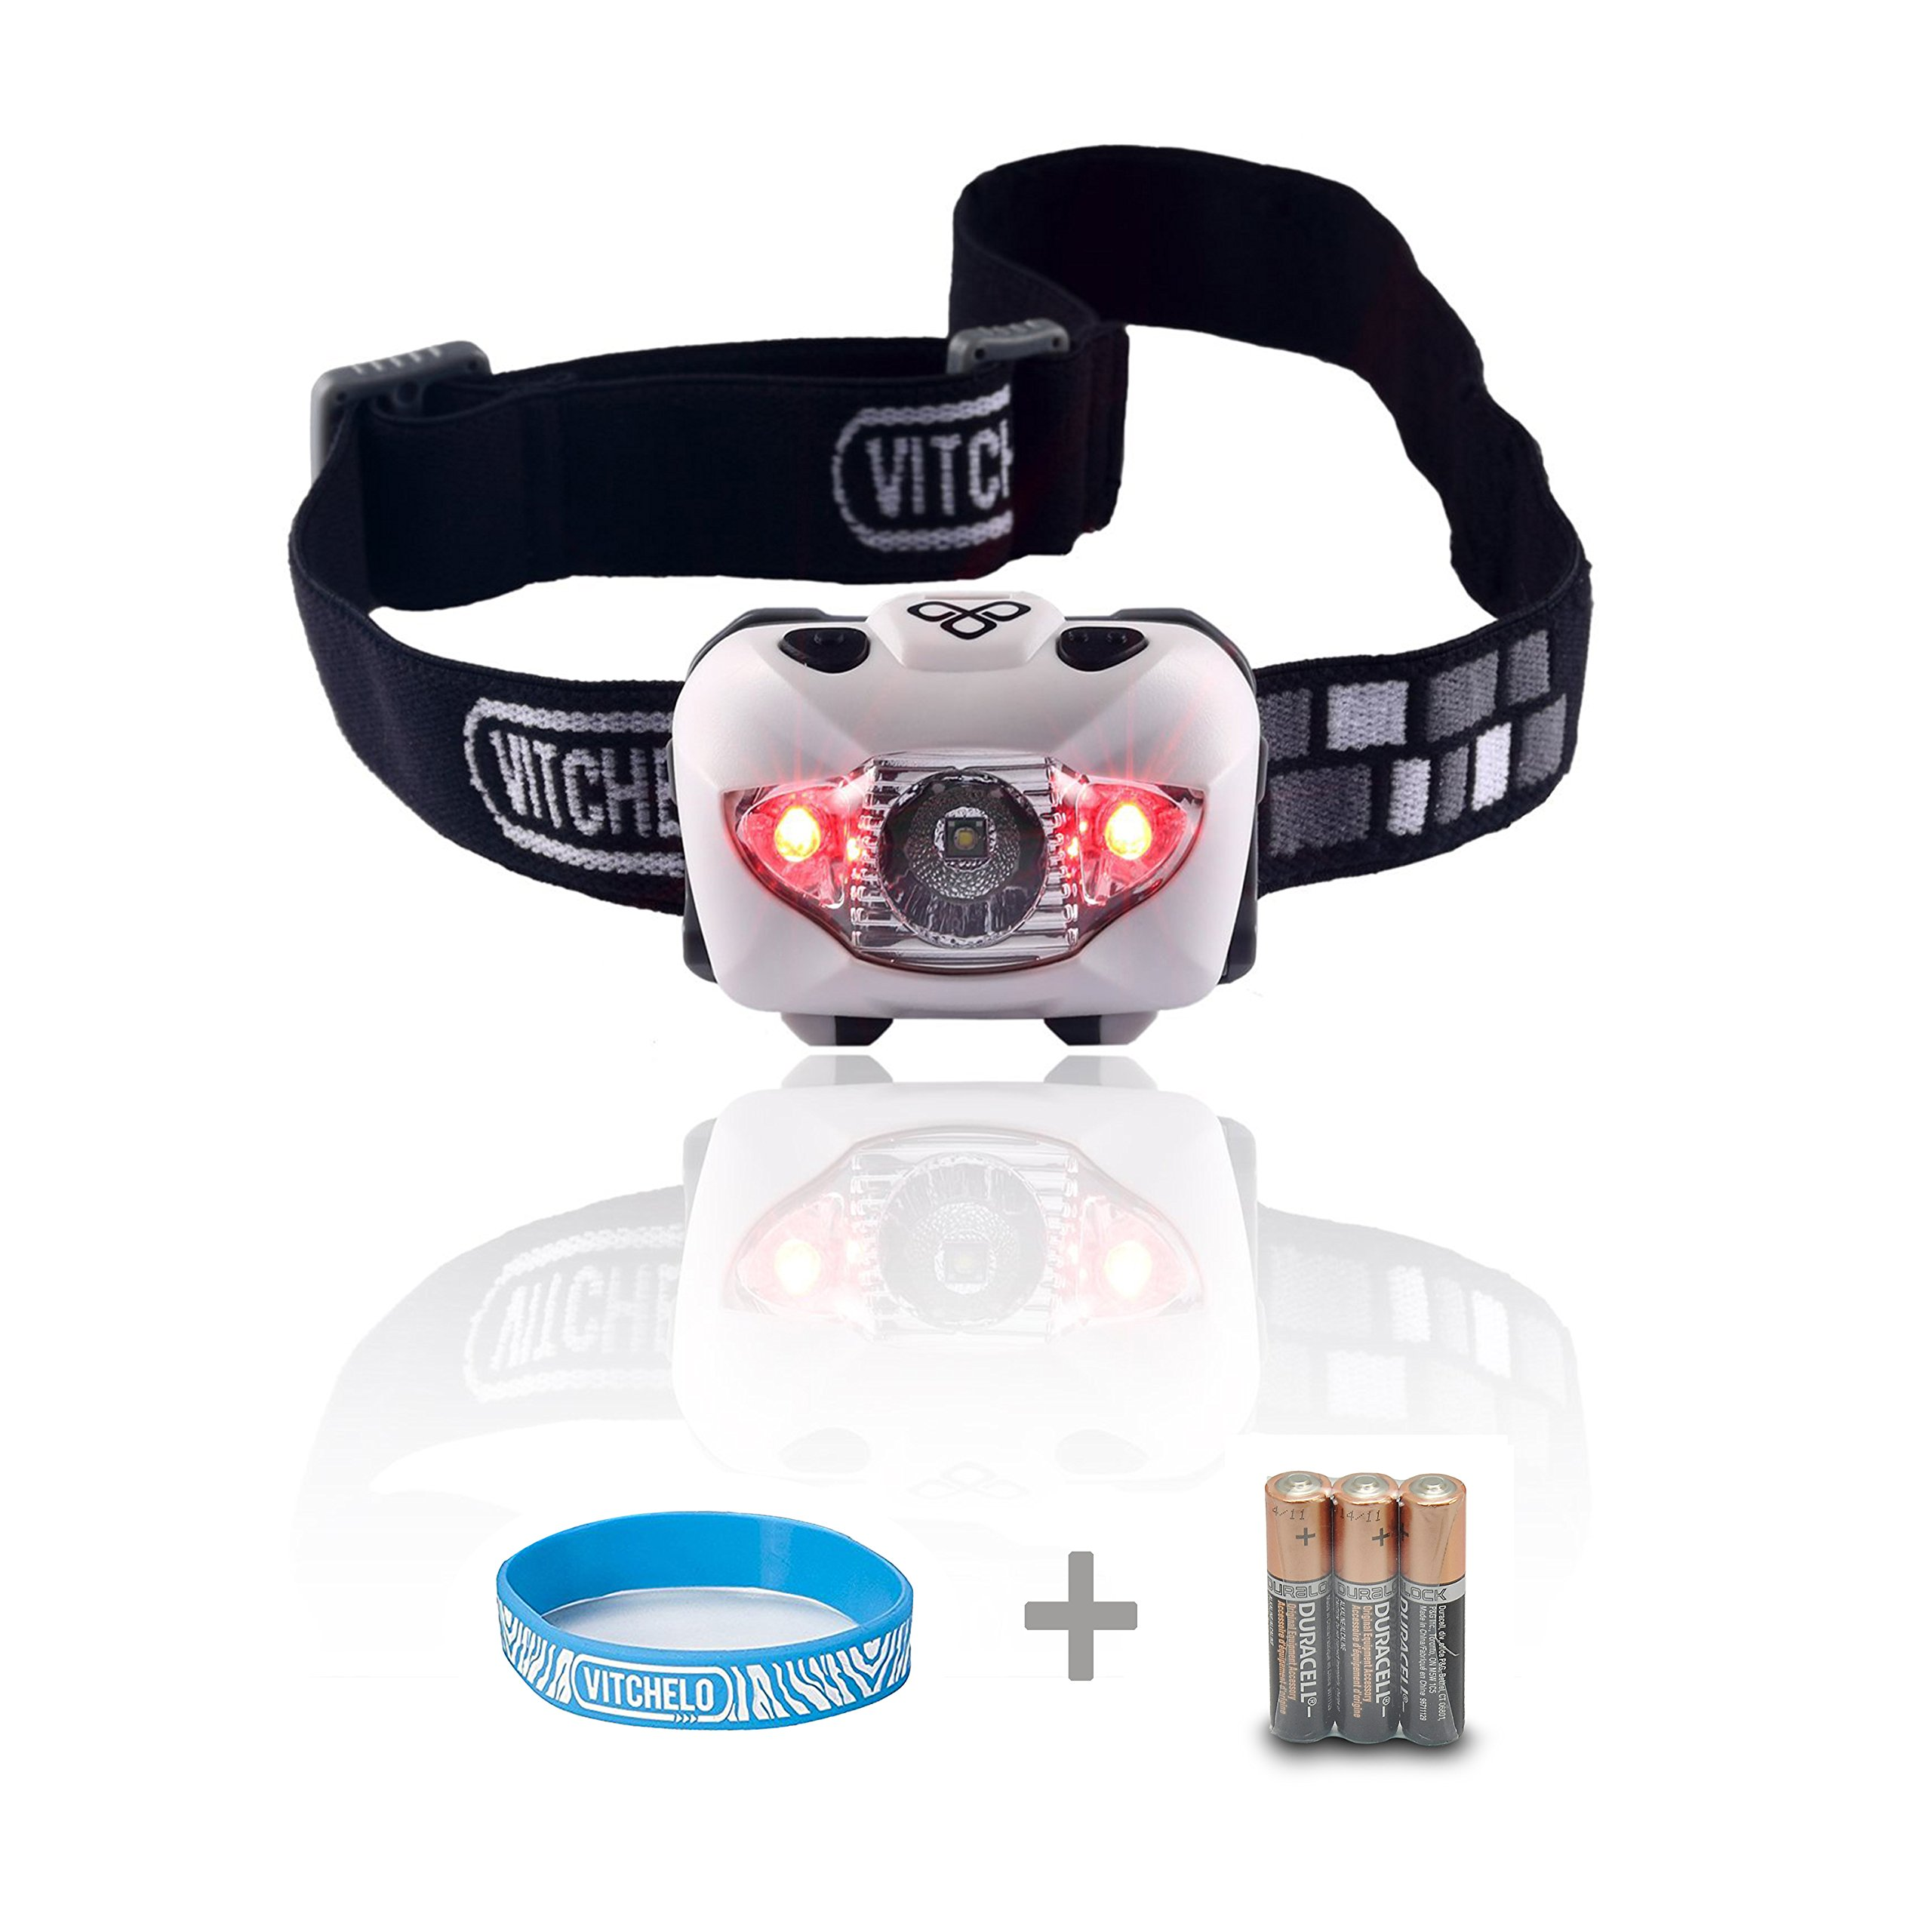 Vitchelo V800 Headlamp with White and Red LED Lights. Waterproof IPX6 and 168 Lumens Bright Head Light. 3 AAA Panasonic Batteries Included (White)